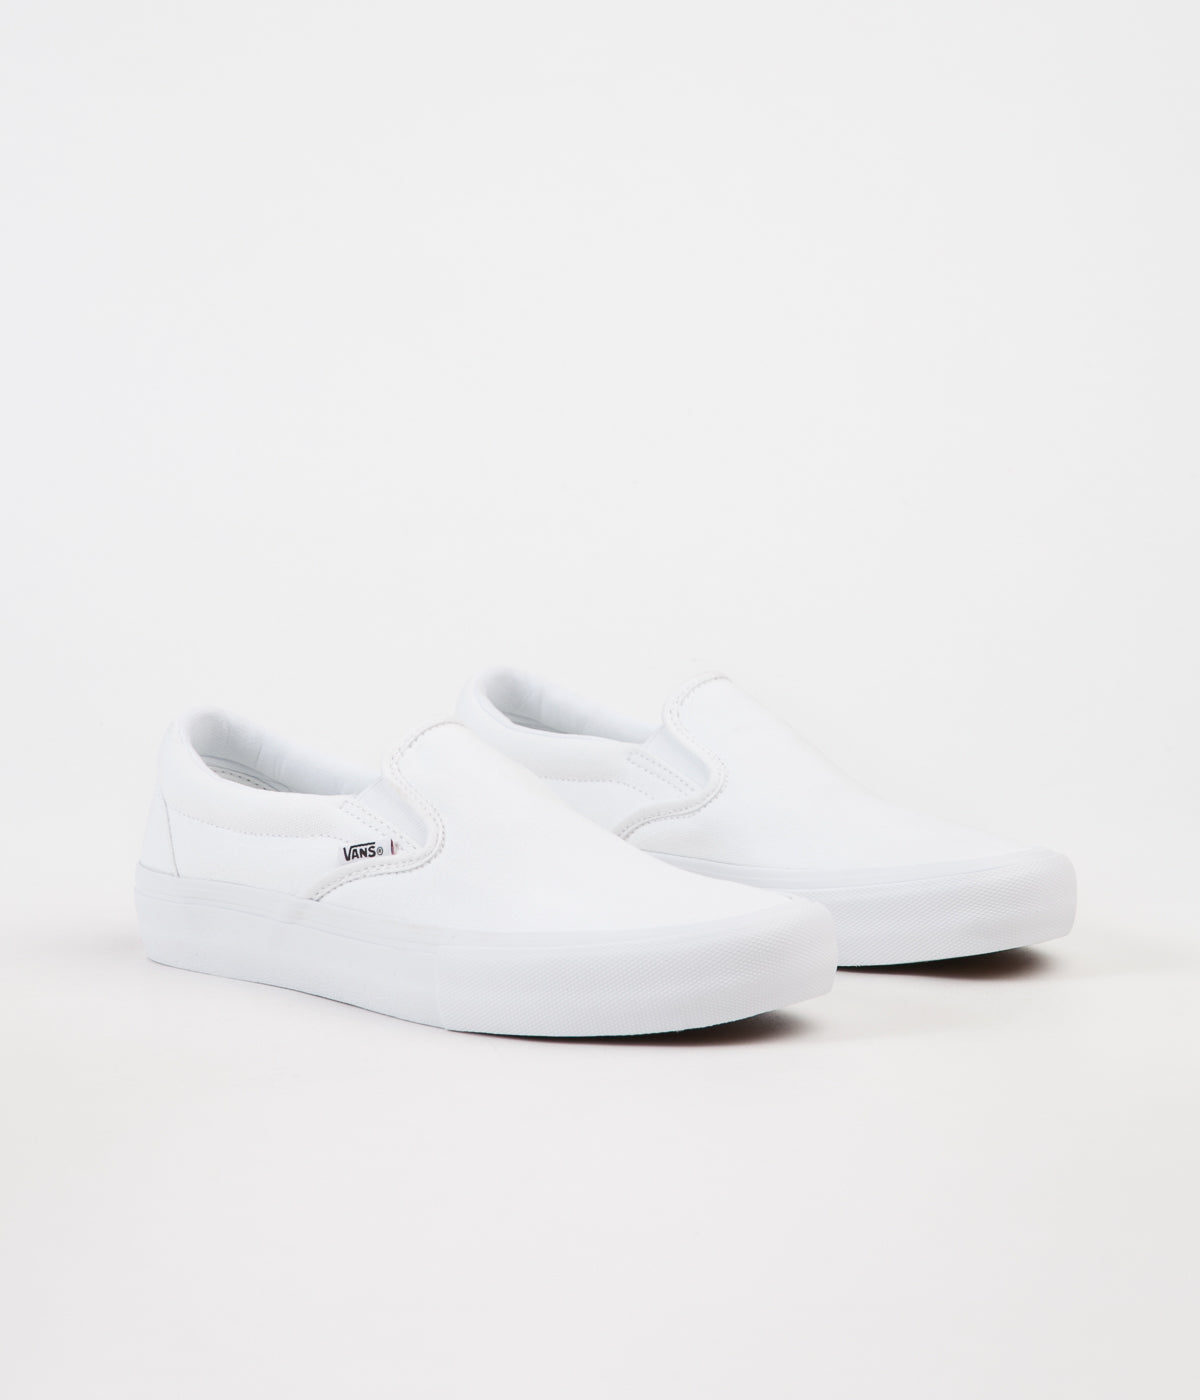 Vans Slip On Pro Shoes - White / White